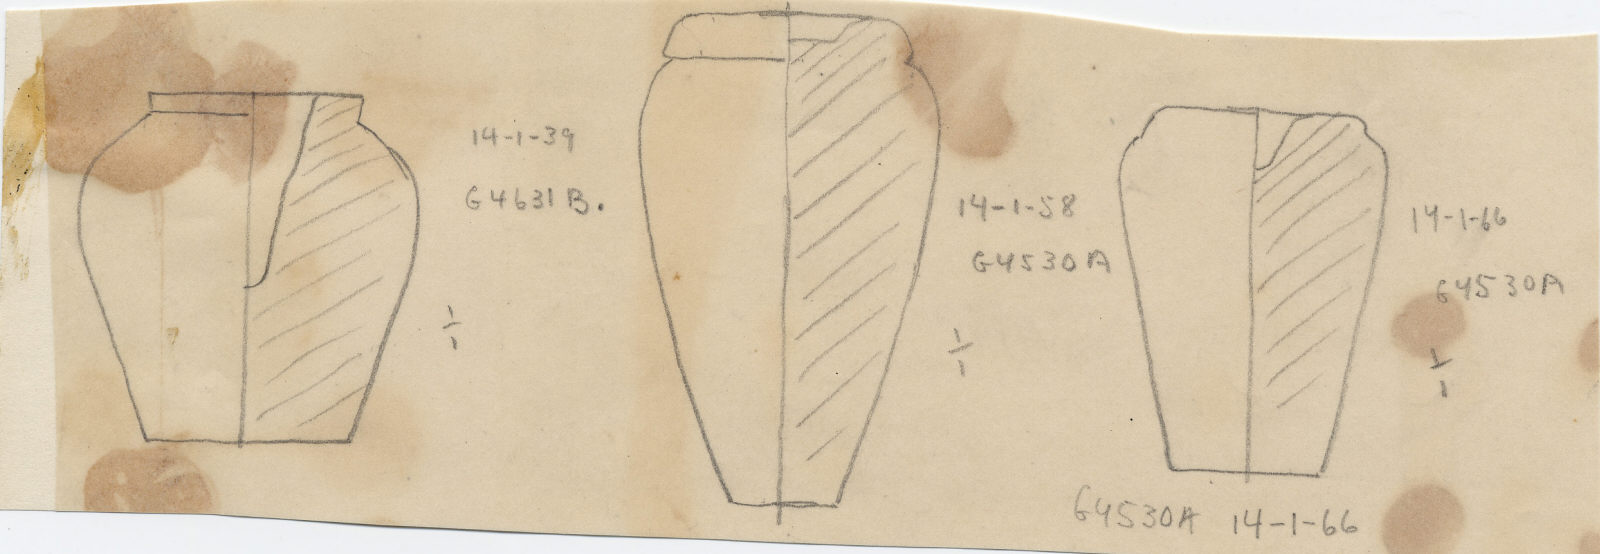 Drawings: Model jars from G 4530, Shaft A; and G 4631, Shaft B